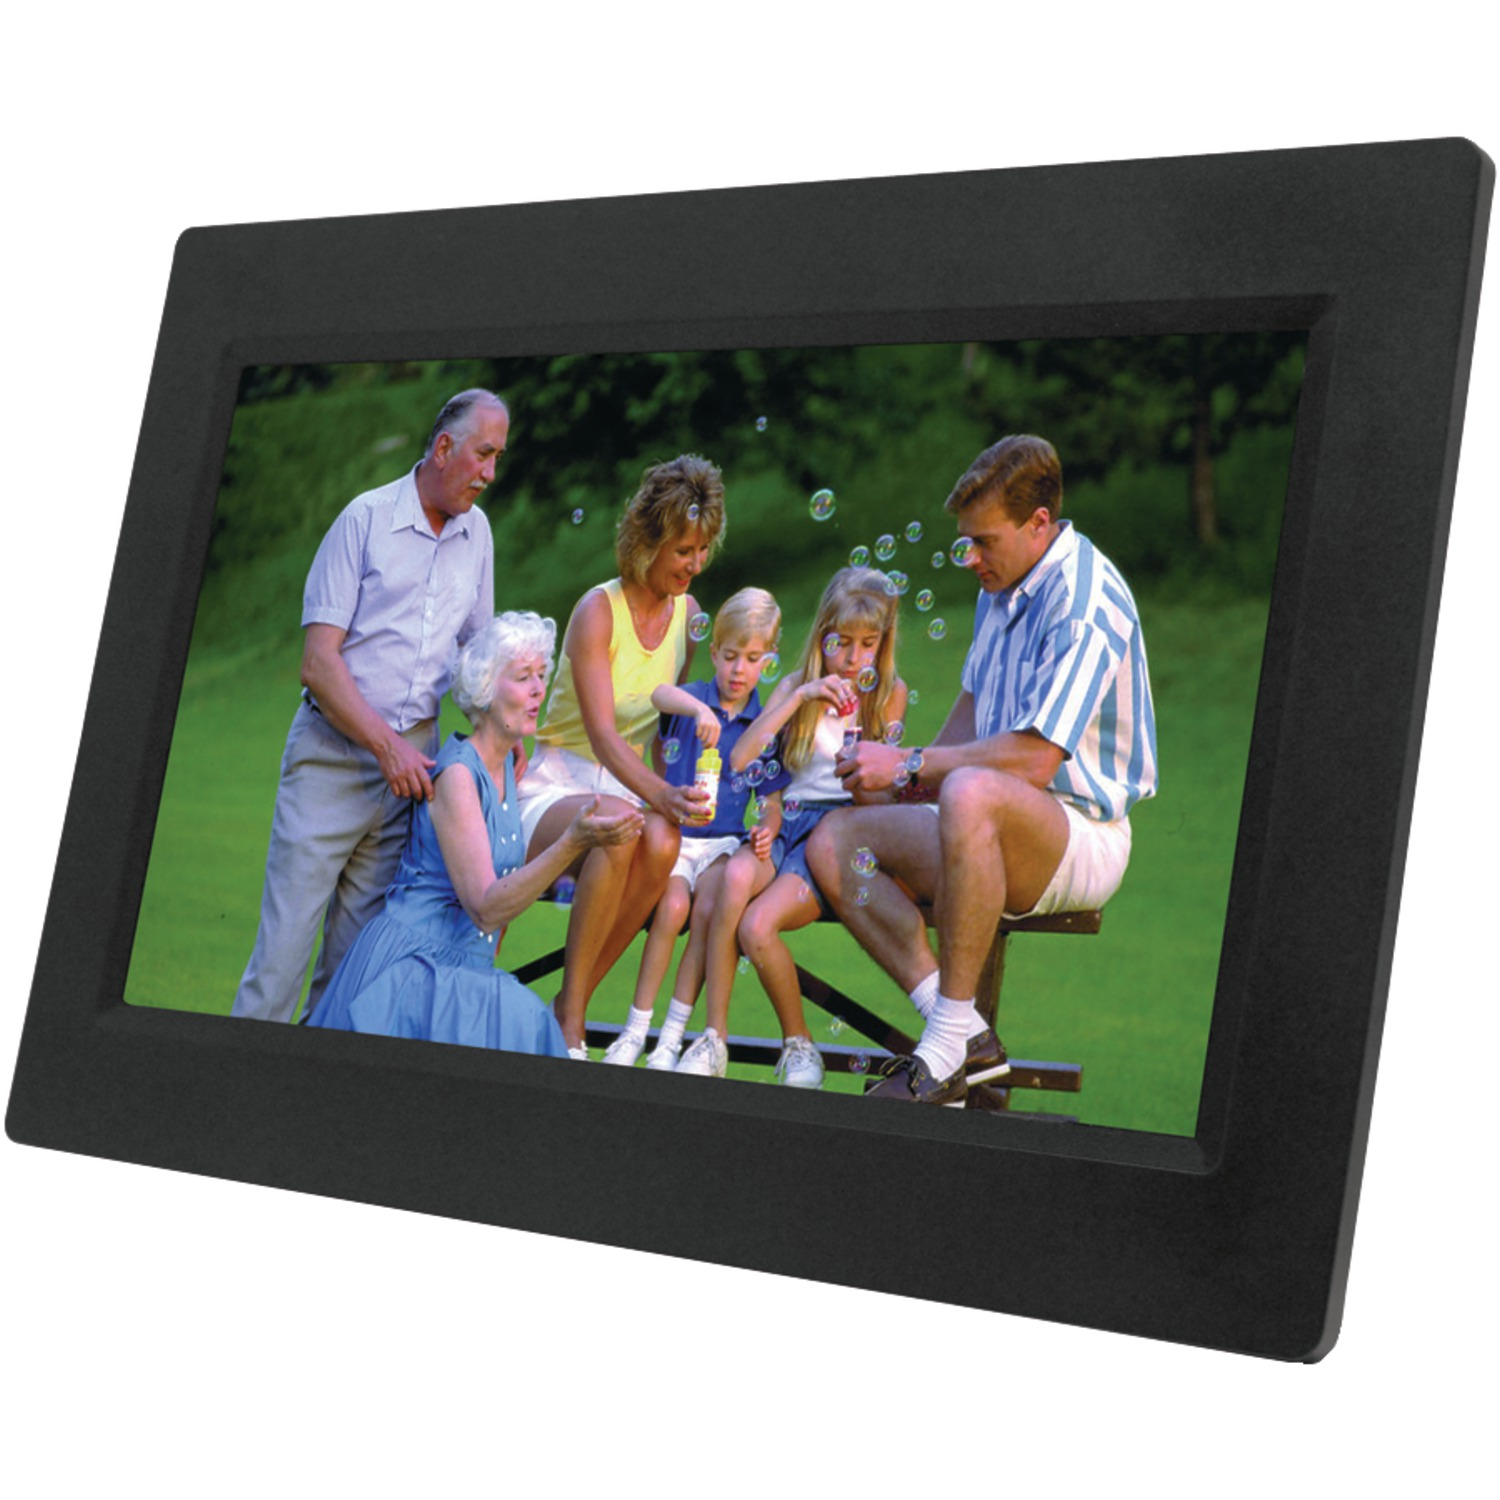 "Naxa NF-1000 TFT/LED Digital Photo Frame (10.1"")"